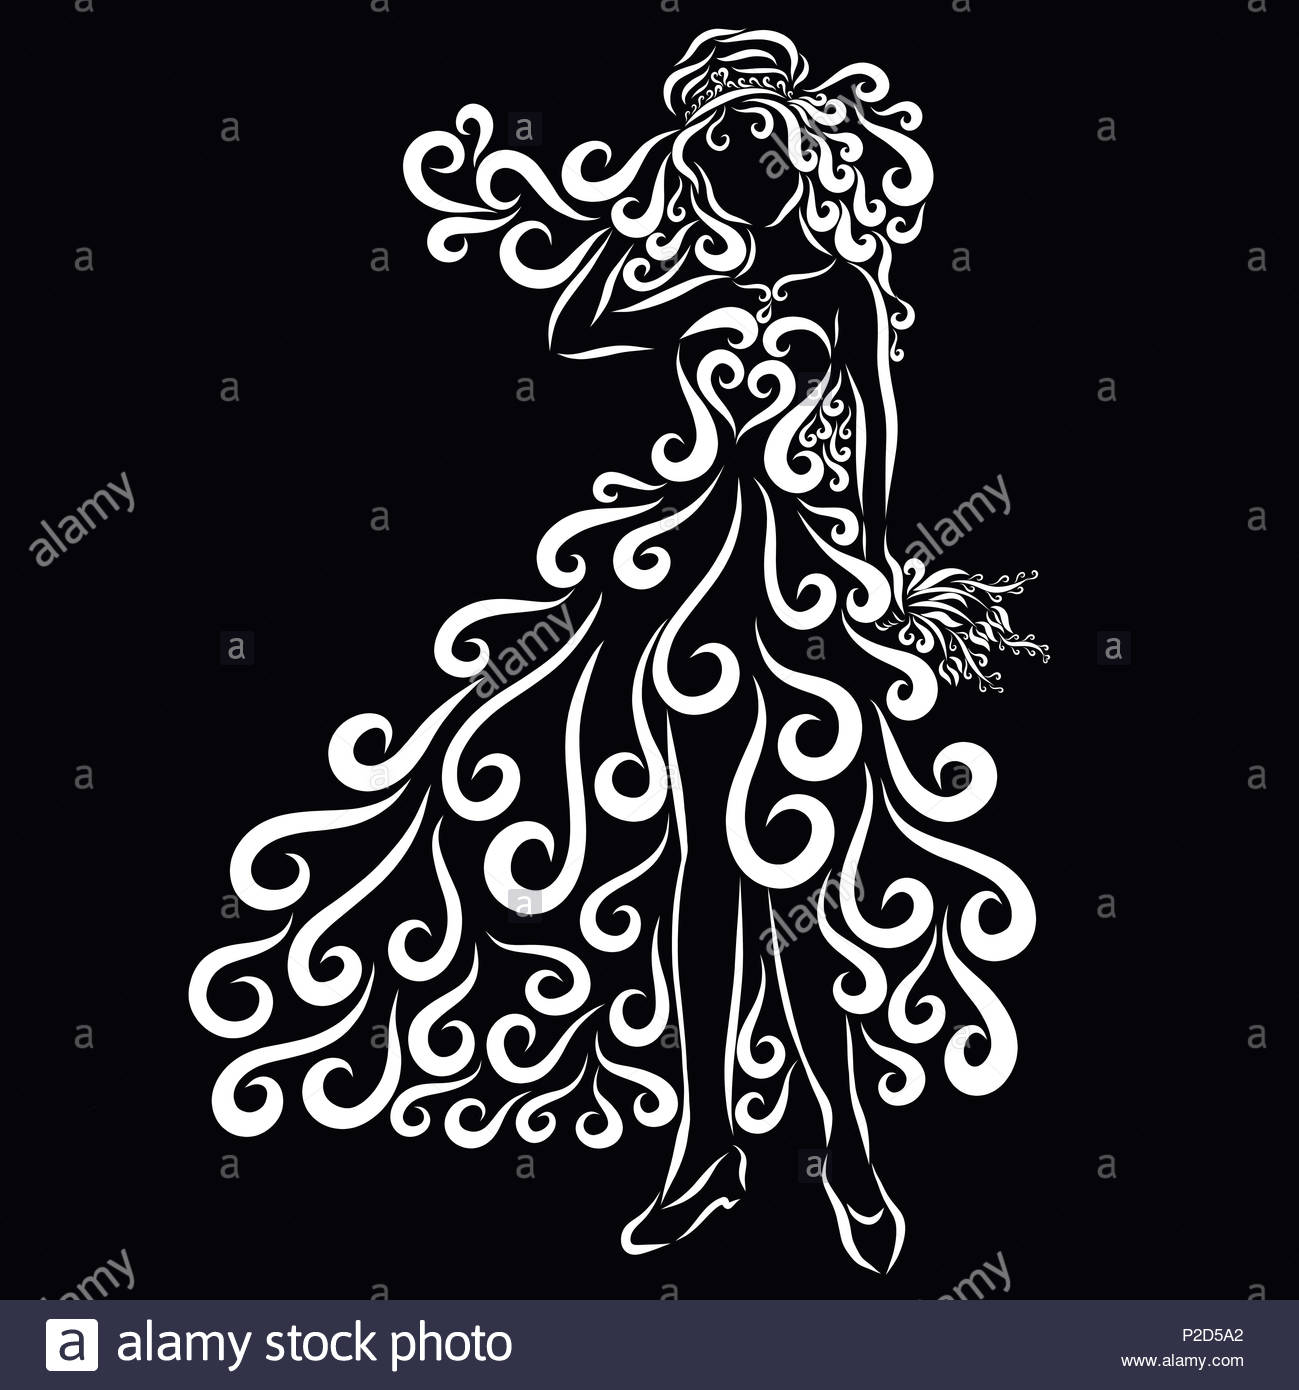 Arte Sacra Nigeria Limited Splendor Dress Stock Photos Splendor Dress Stock Images Alamy